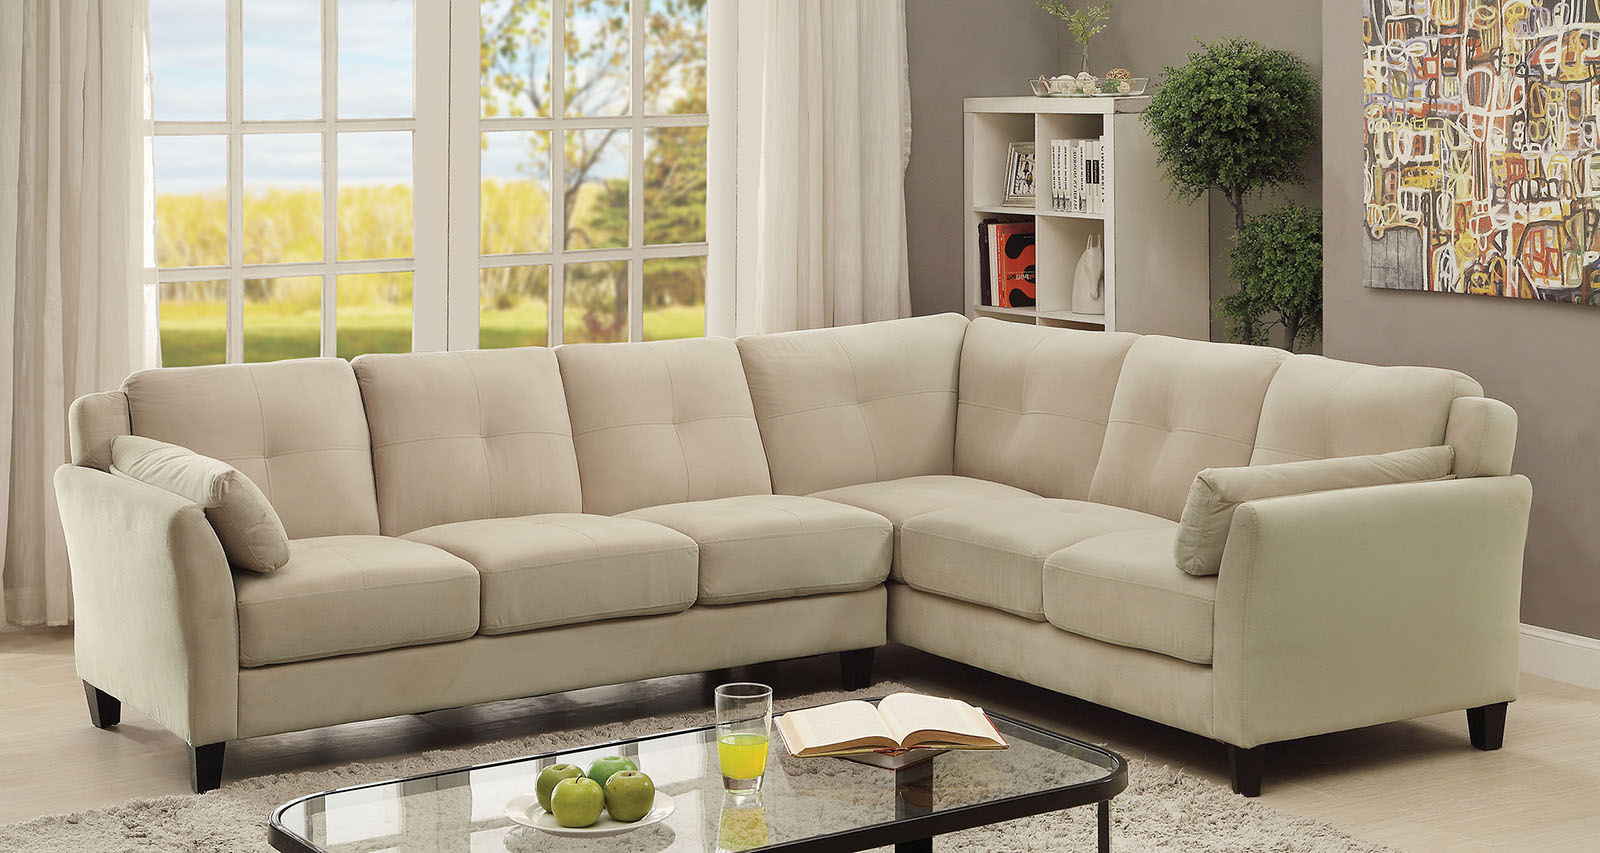 Most Up To Date Beige Sofas Intended For 6368Bg Beige Contemporary Sectional Sofa Furniture Of (View 14 of 15)